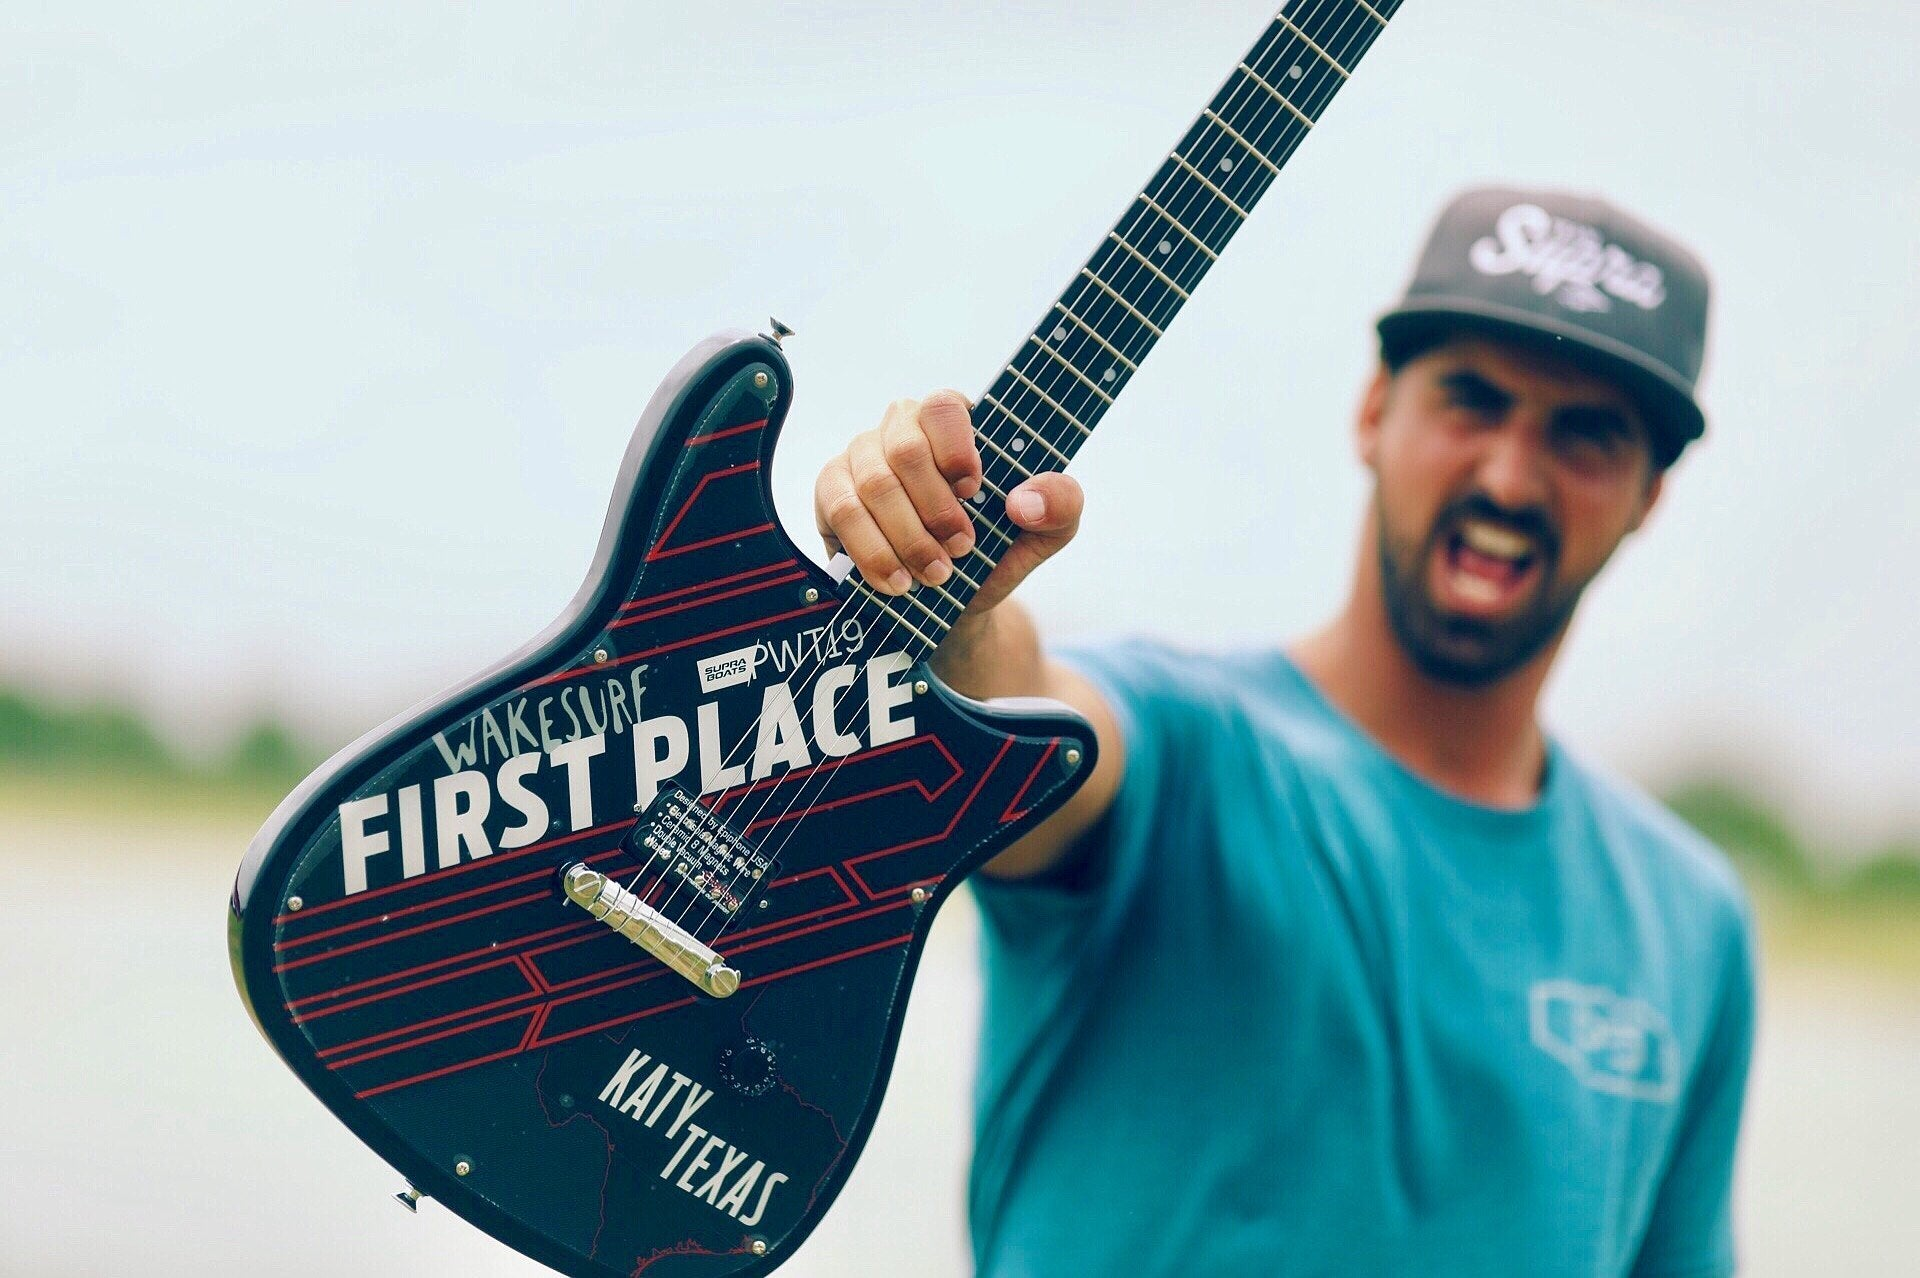 Sean Silveira Takes The Win At The First Stop of The Pro Wakesurf Tour in Katy, TX